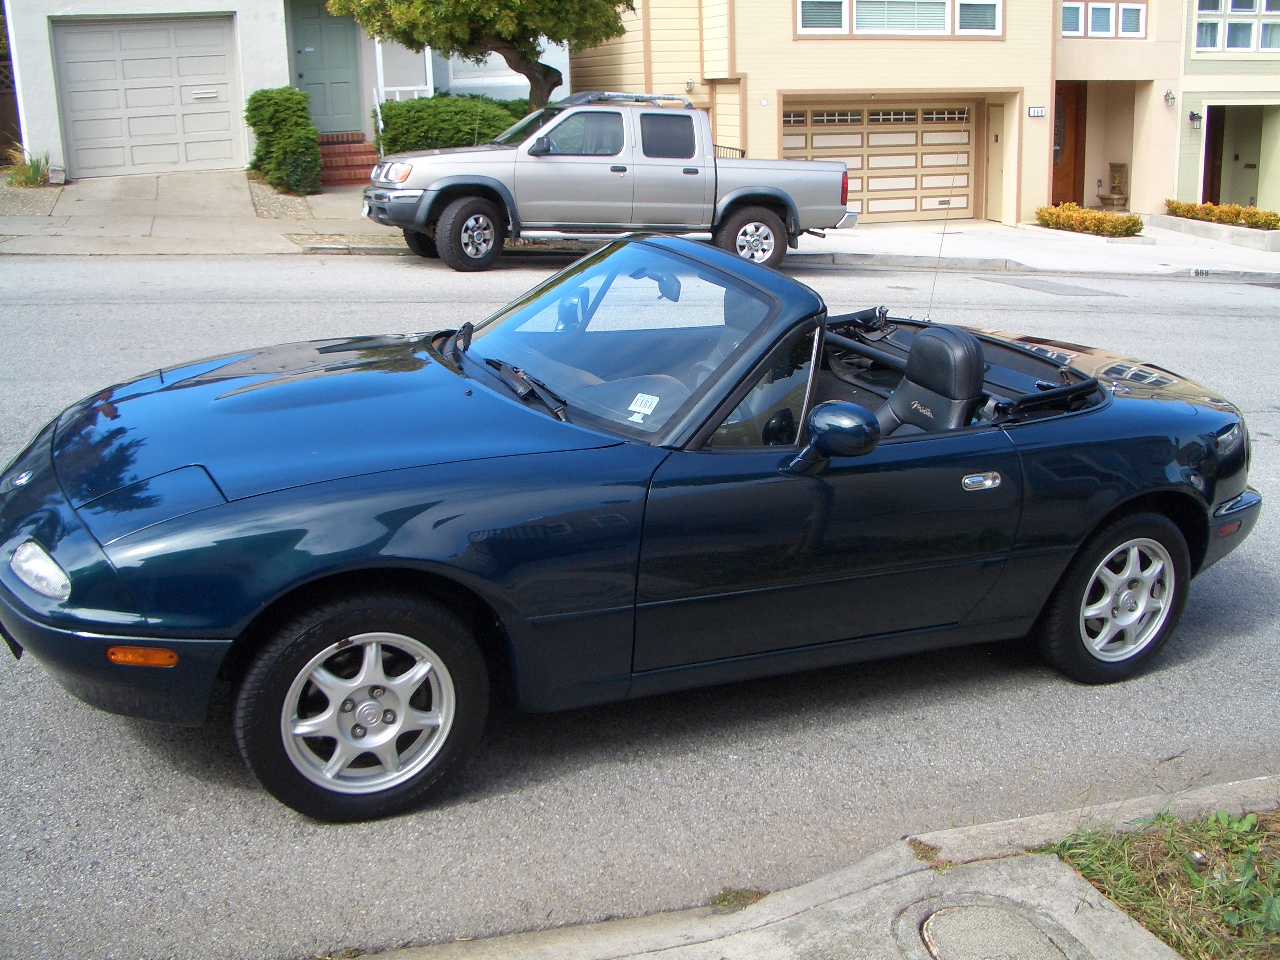 1997 Mazda MX-5 Miata | Flickr - Photo Sharing!